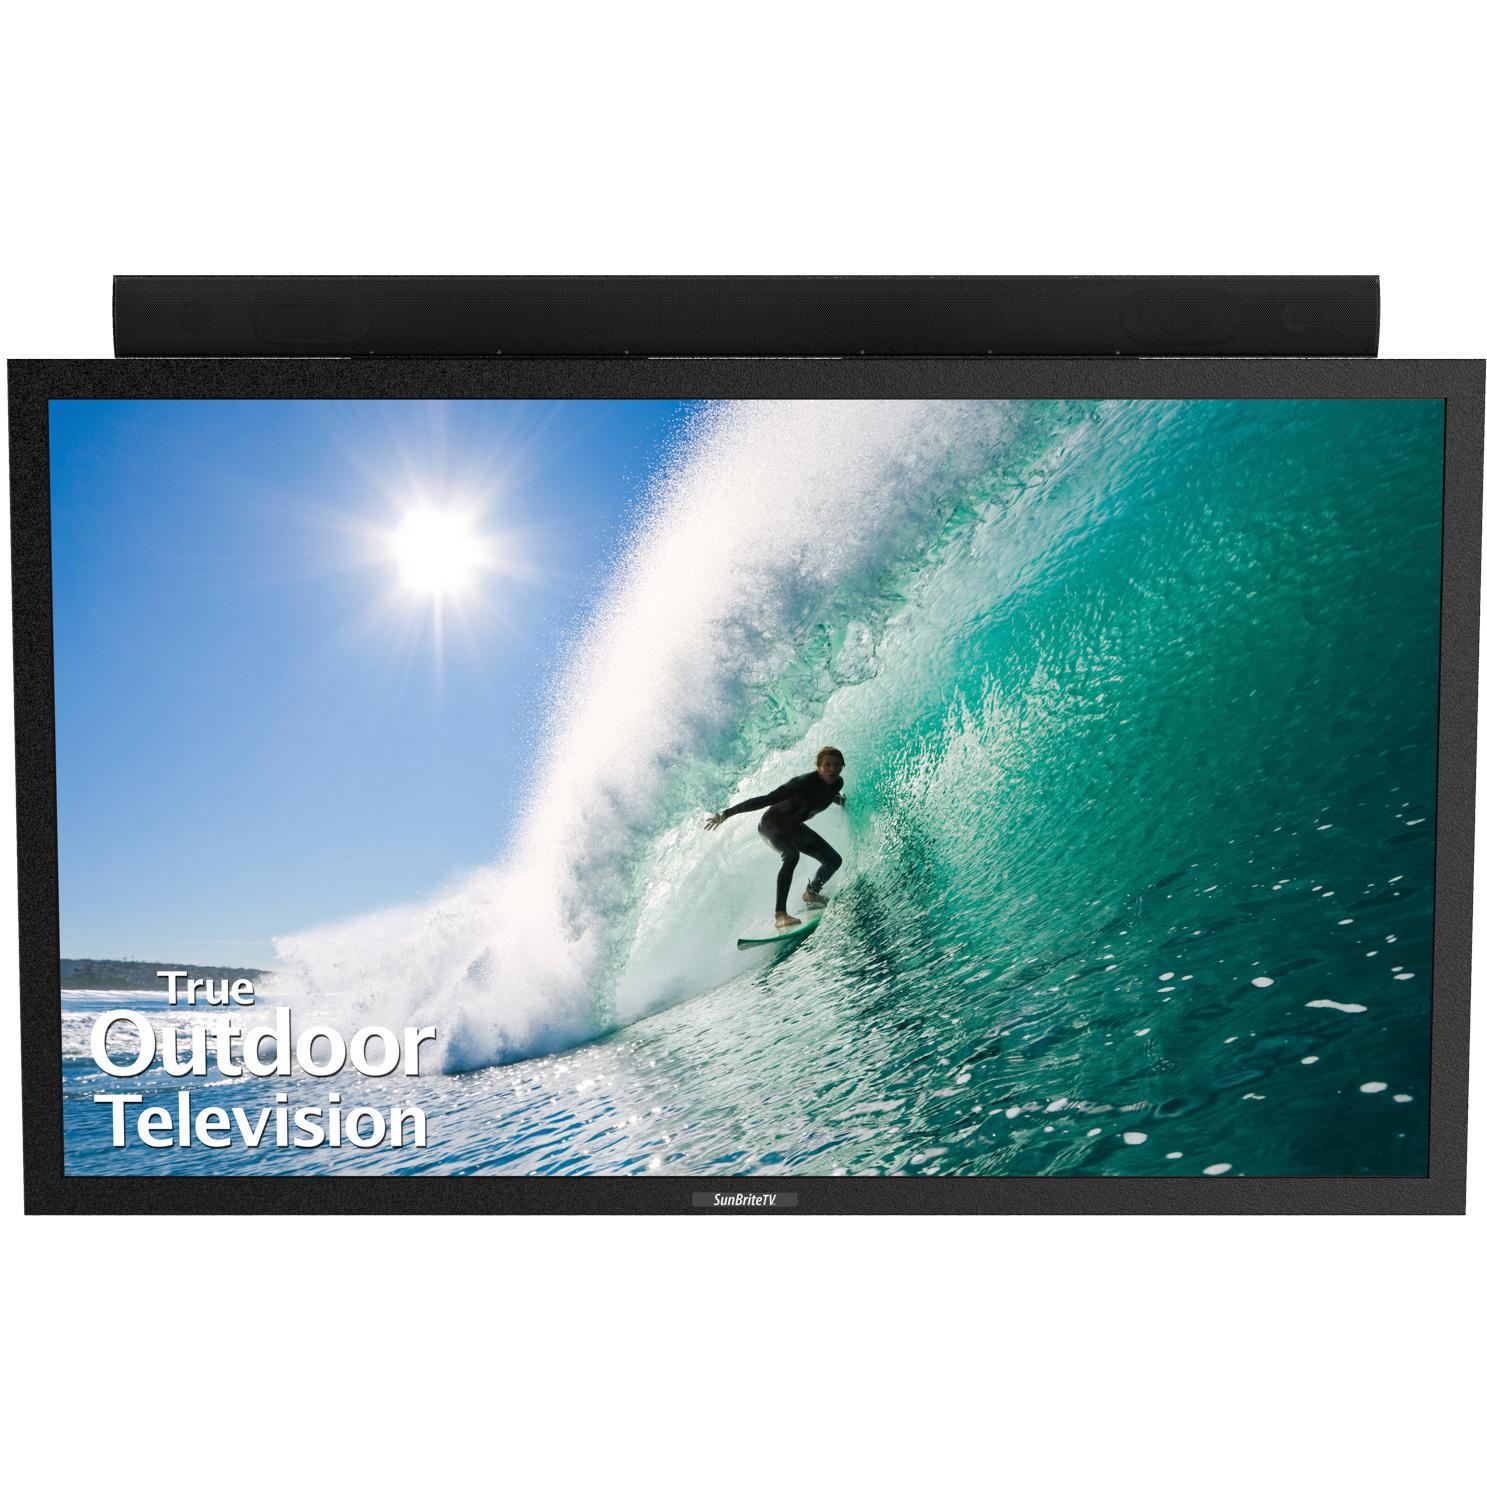 Sunbrite Tv Pro Series 55-Inch 1080p LED Outdoor HDTV - B...